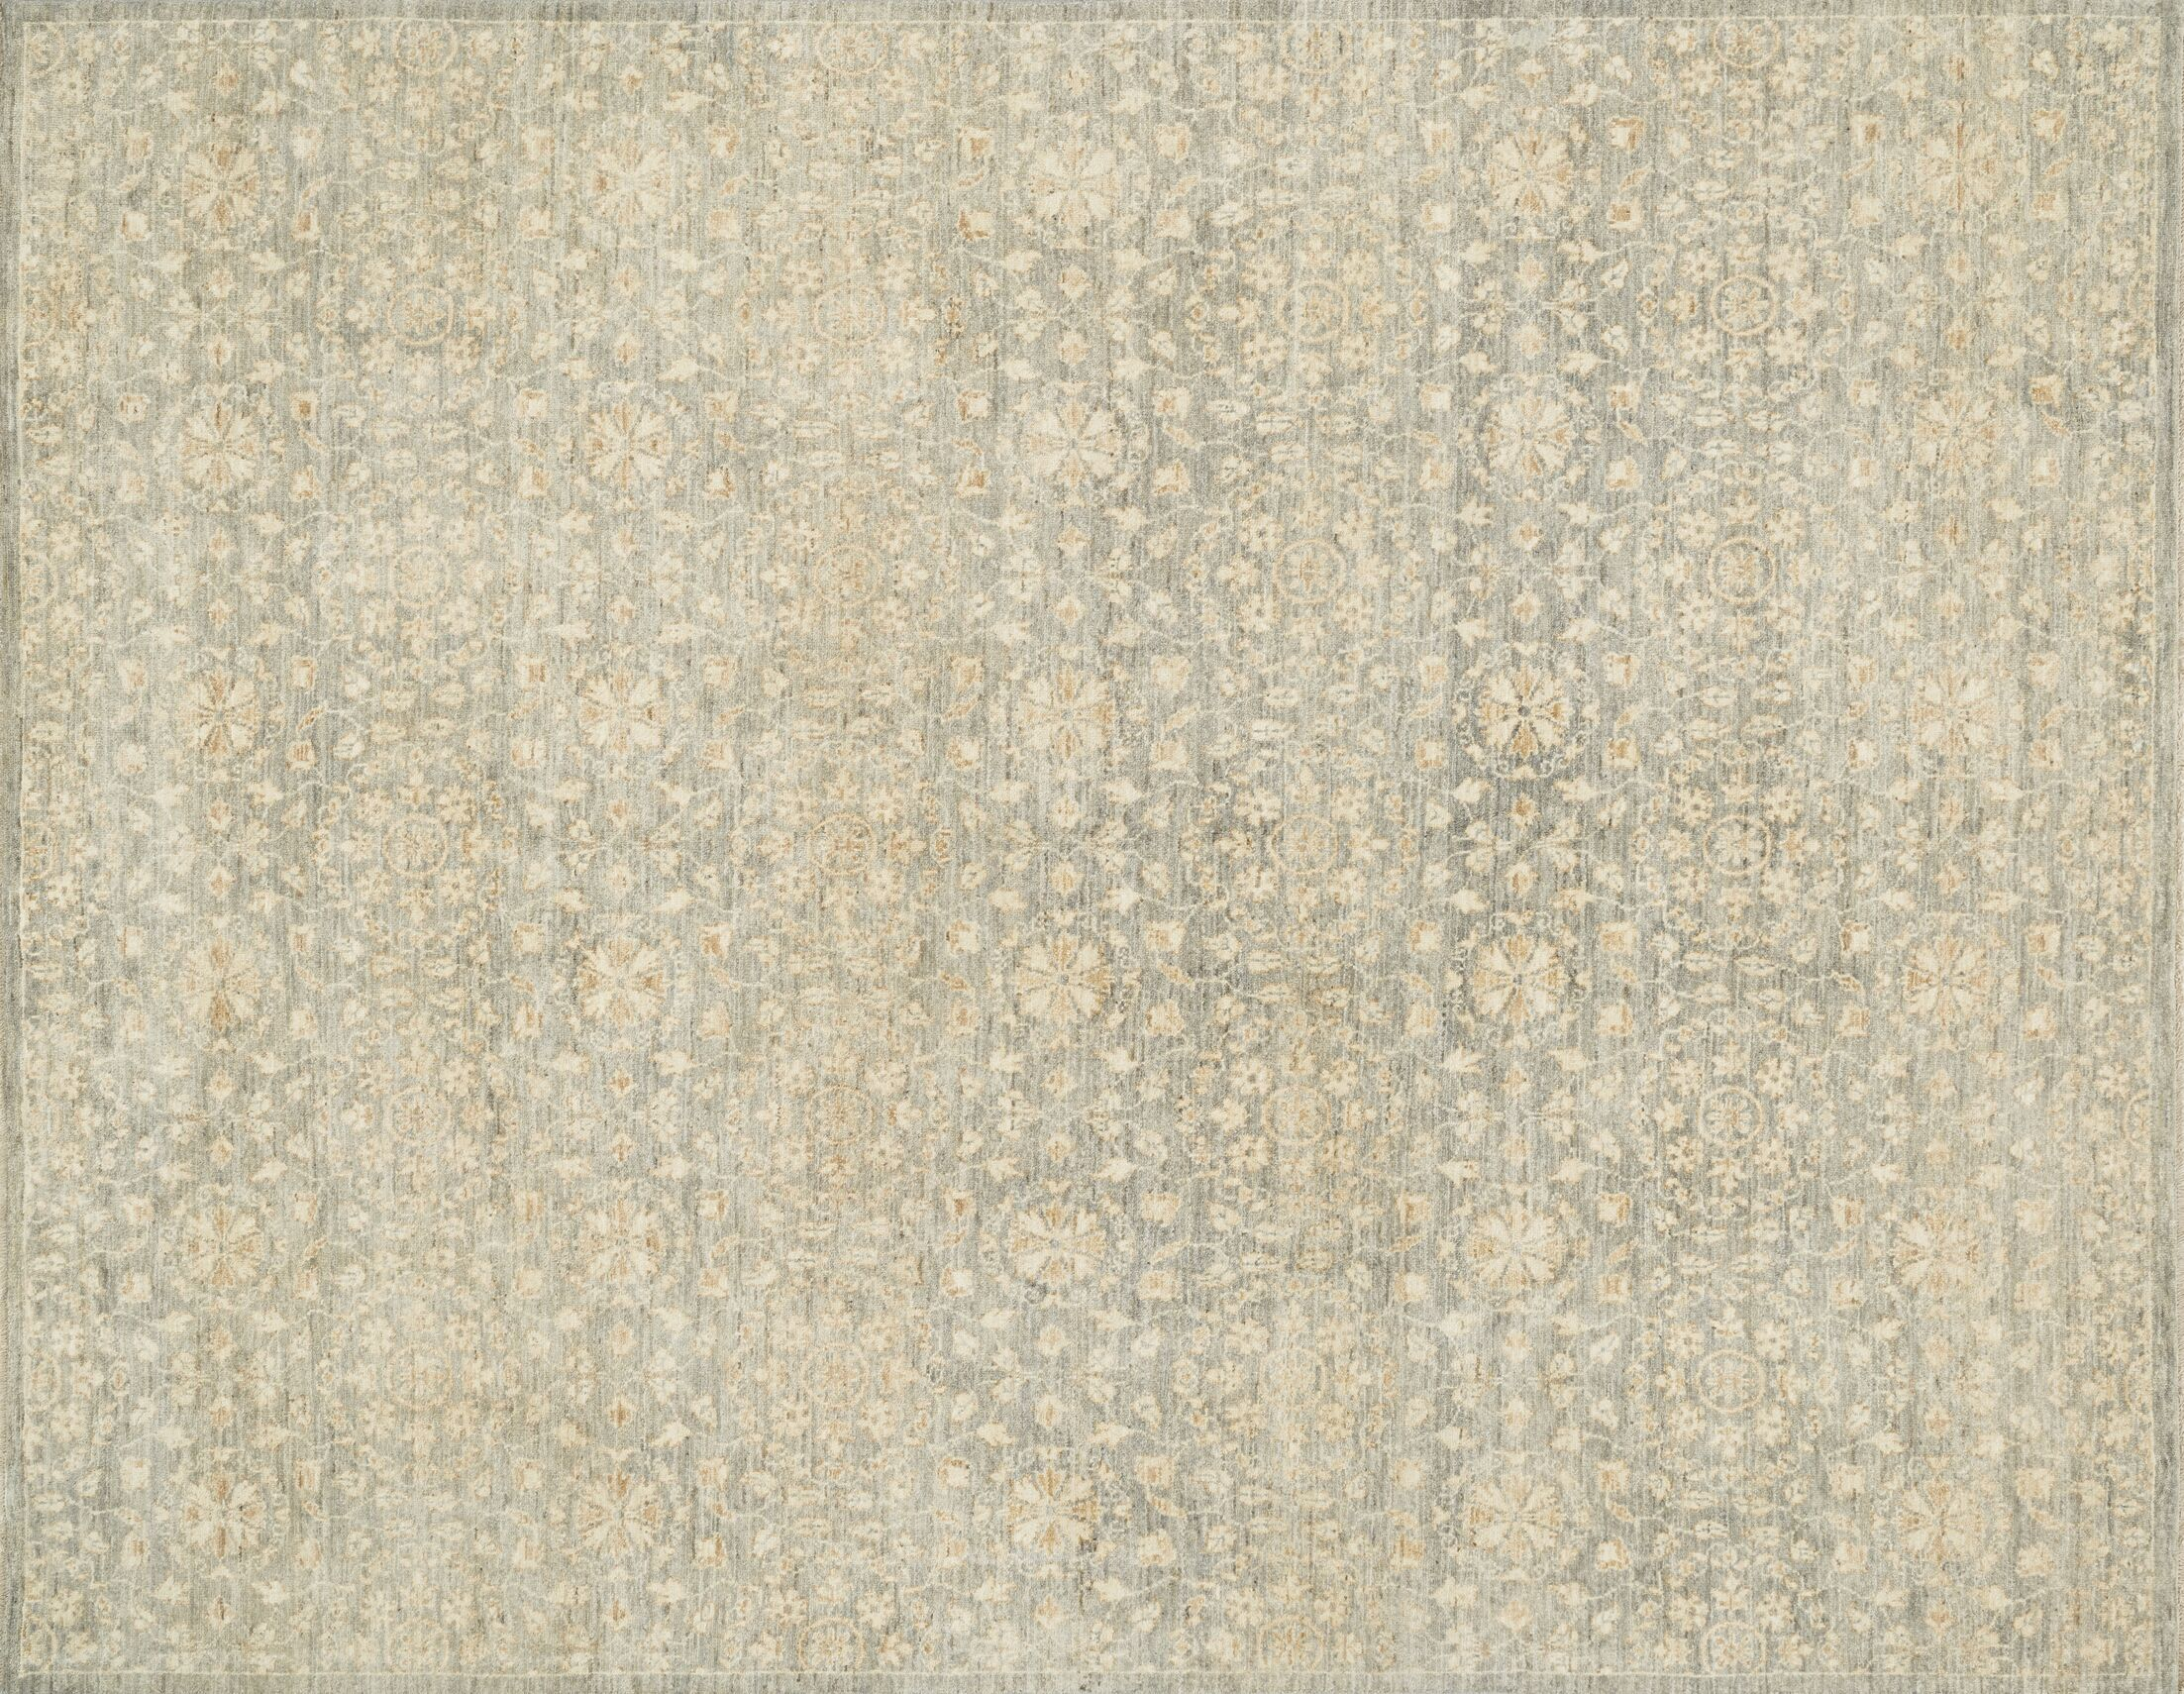 Claussen Hand-Woven Limestone Area Rug Rug Size: Rectangle 2' x 3'